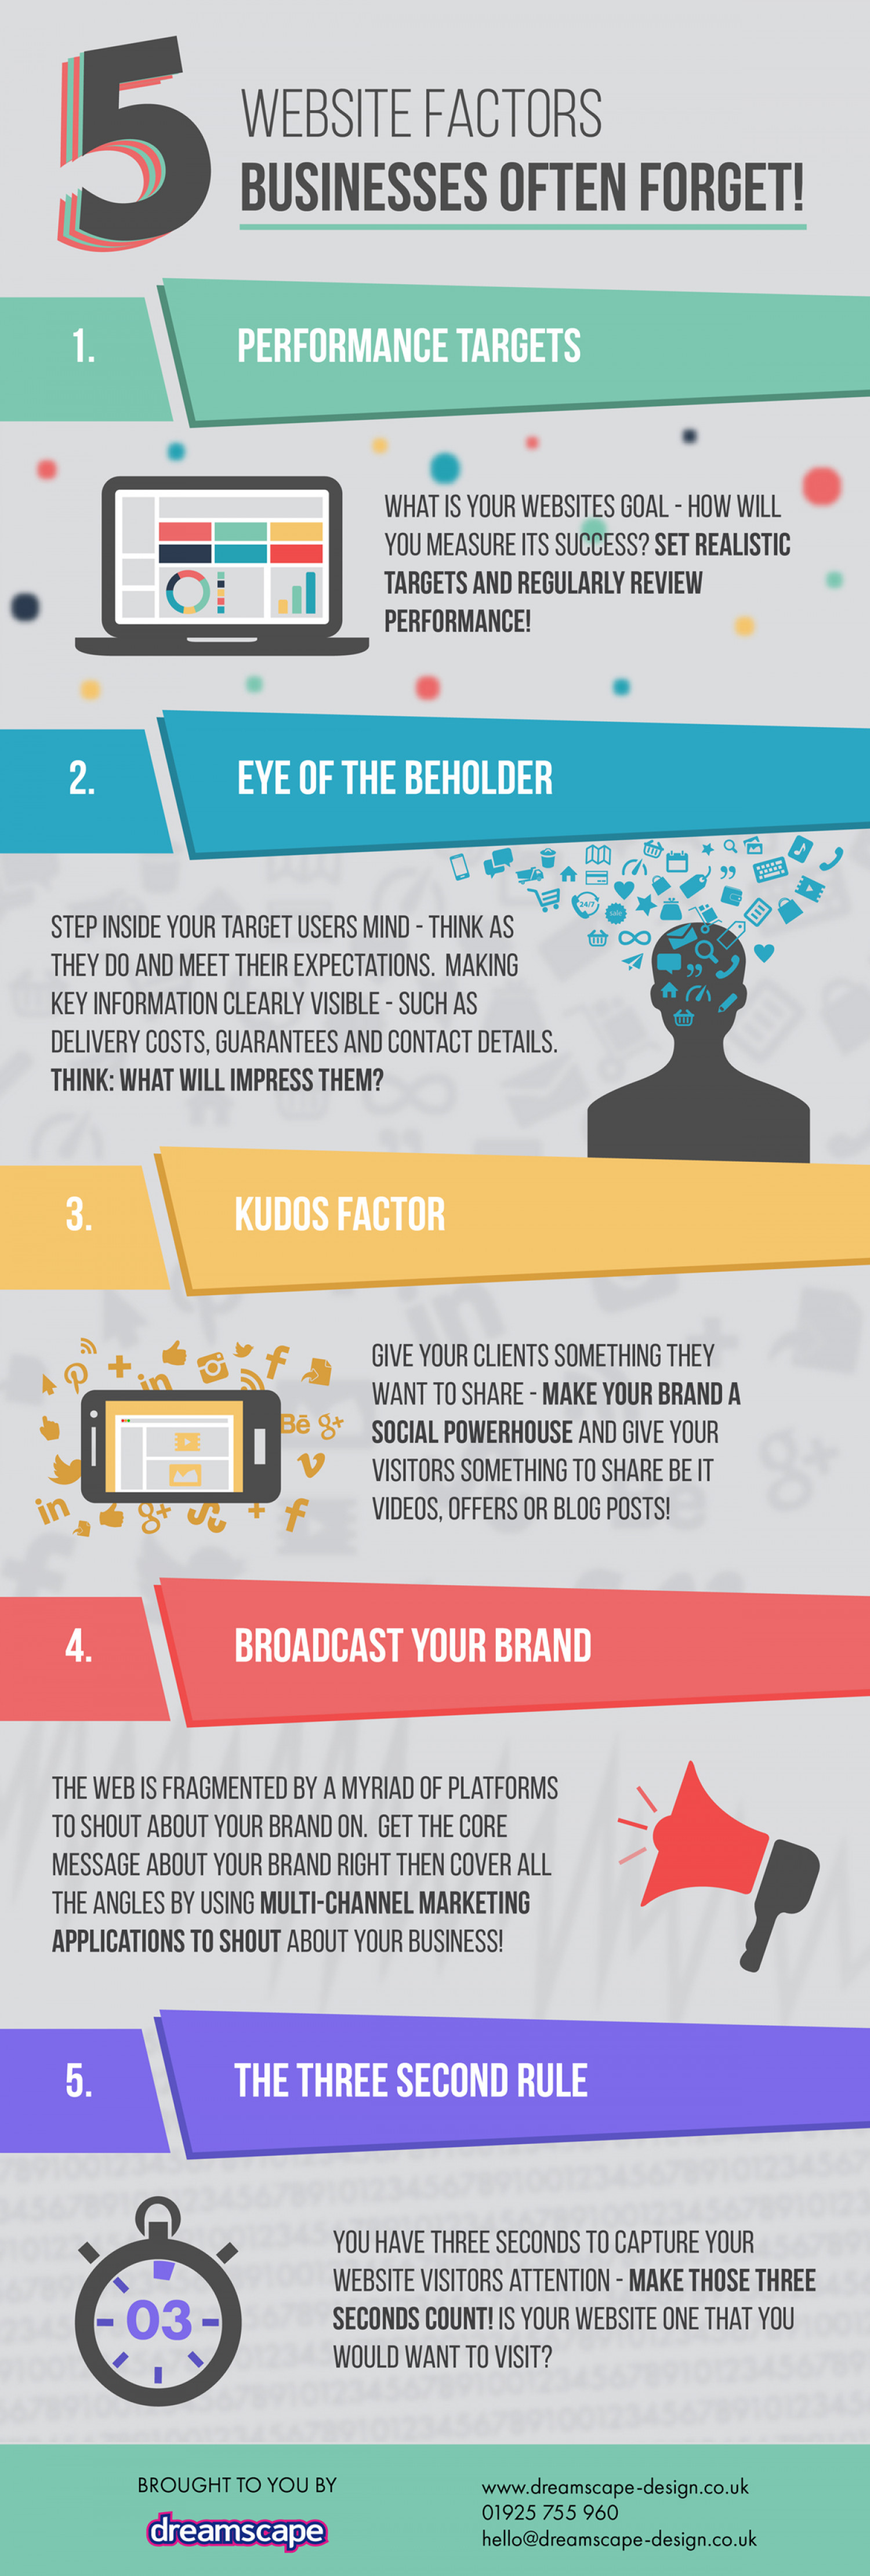 Five Website Factors Businesses Often Forget! Infographic